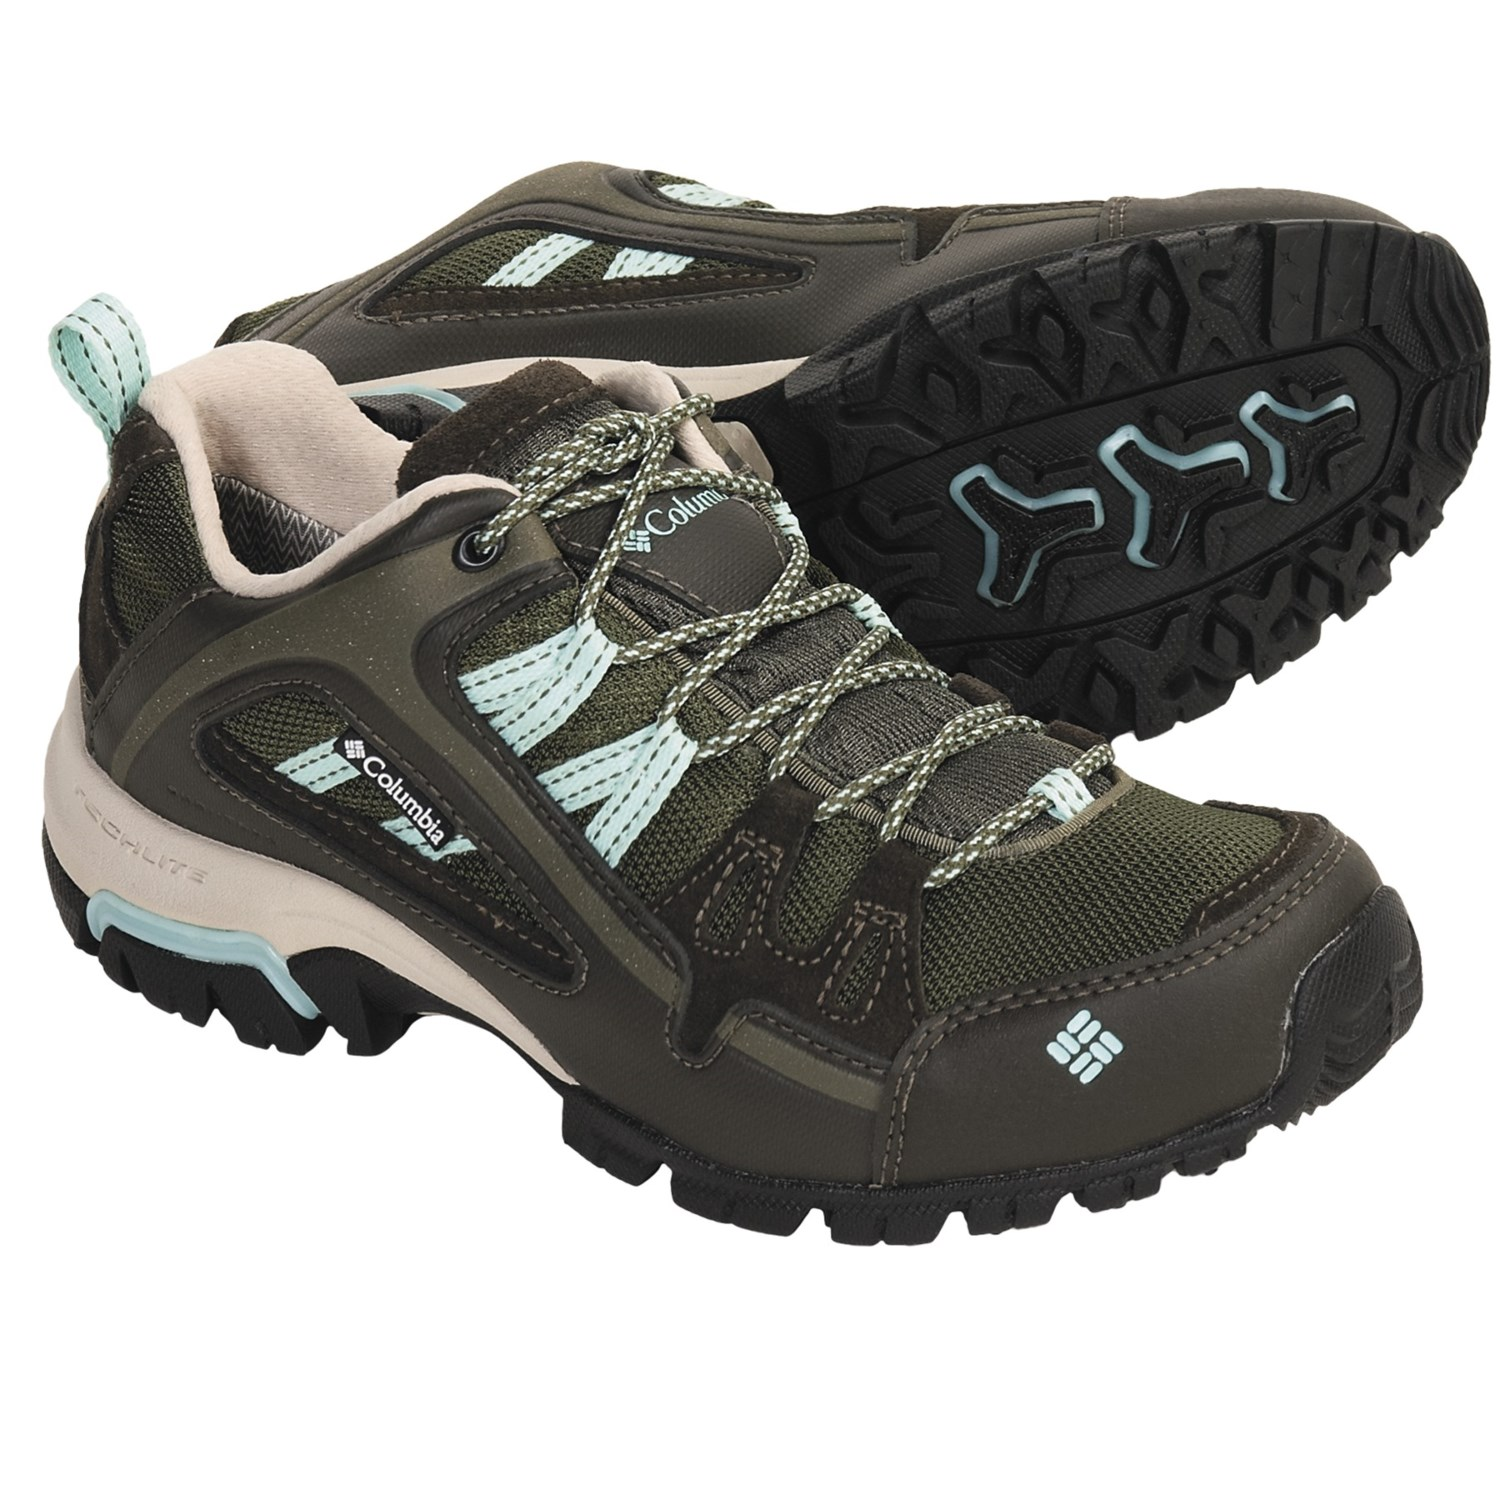 Columbia Sportswear Shastalavista Trail Shoes - Waterproof (For Women